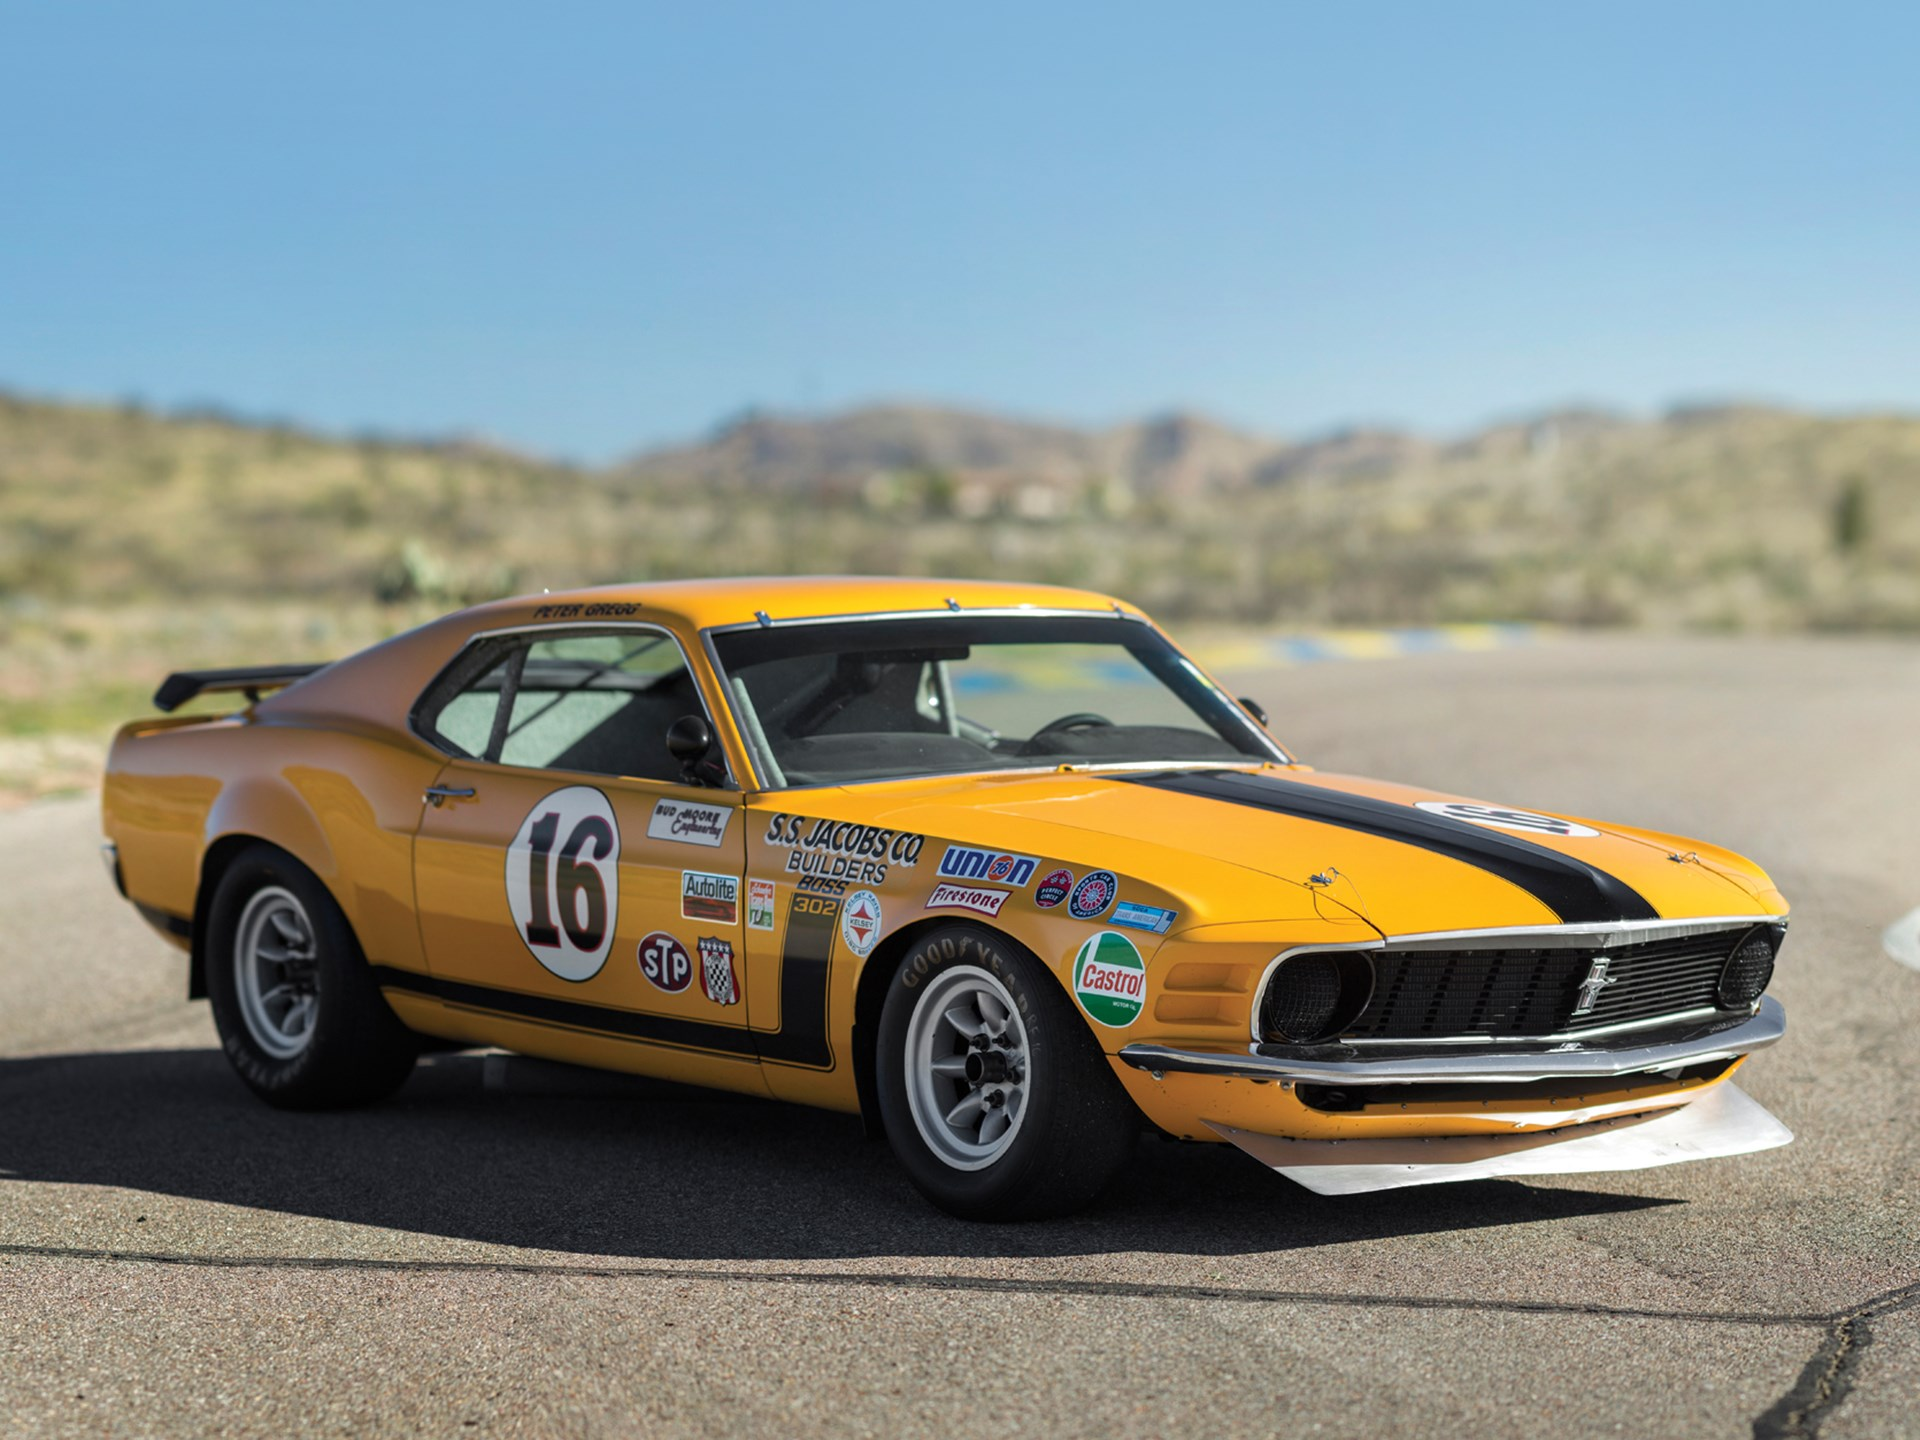 1970 ford mustang boss 302 kar kraft trans am